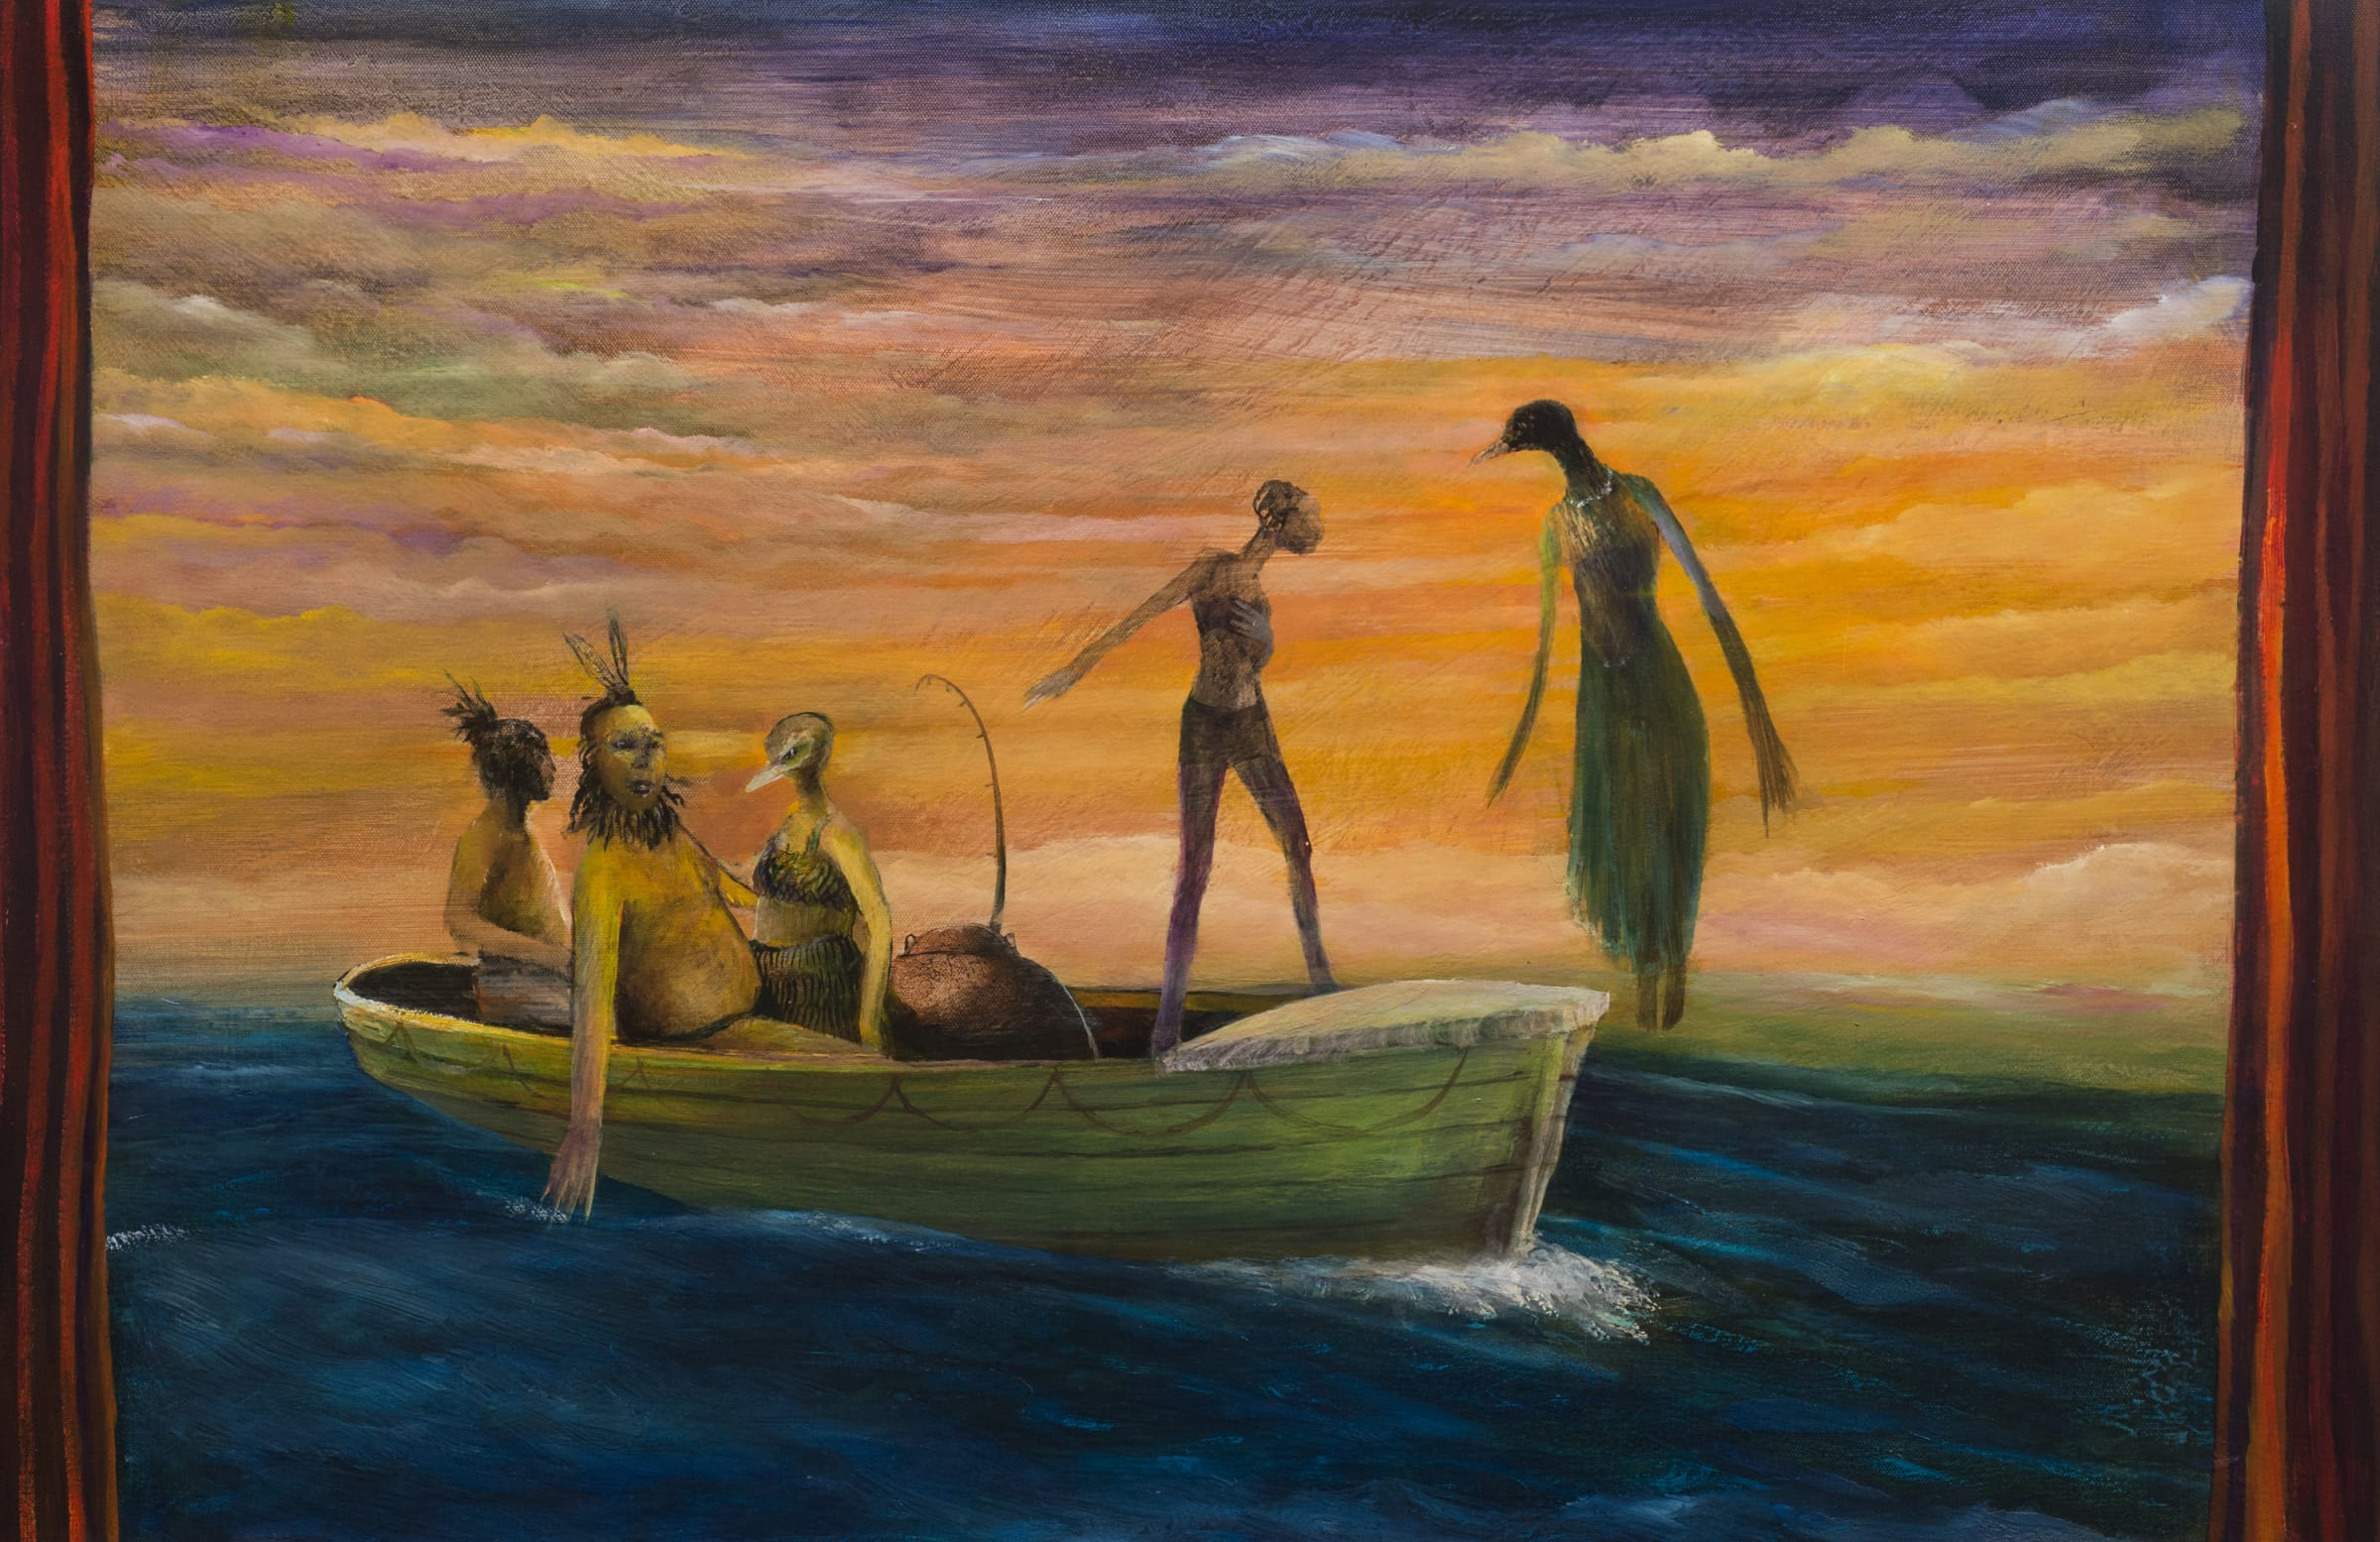 """<span class=""""link fancybox-details-link""""><a href=""""/artists/54-john-walsh/works/7351-john-walsh-the-life-boat-2018/"""">View Detail Page</a></span><div class=""""artist""""><strong>John WALSH</strong></div> <div class=""""title""""><em>The Life Boat</em>, 2018</div> <div class=""""medium"""">Oil on canvas</div> <div class=""""dimensions"""">61 x 91 cm<br /> 24 1/8 x 35 7/8 in</div><div class=""""copyright_line"""">Copyright The Artist</div>"""